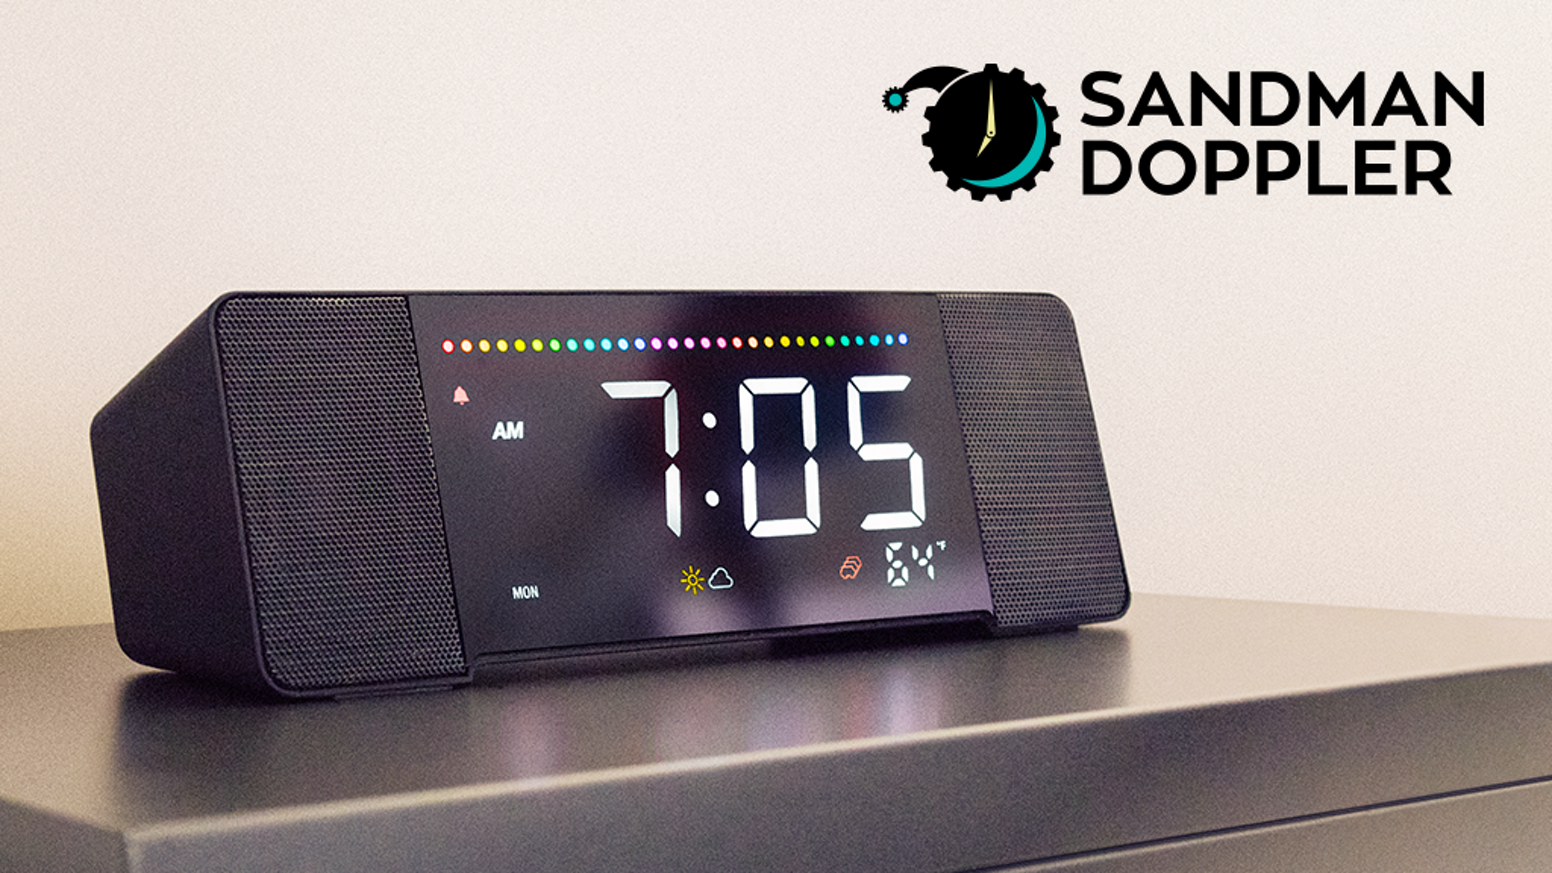 Alexa enabled, 6 USB charging ports, music playing, smart alarm clock. Meet the Sandman Doppler, the best alarm clock you've ever seen! Preorder now!